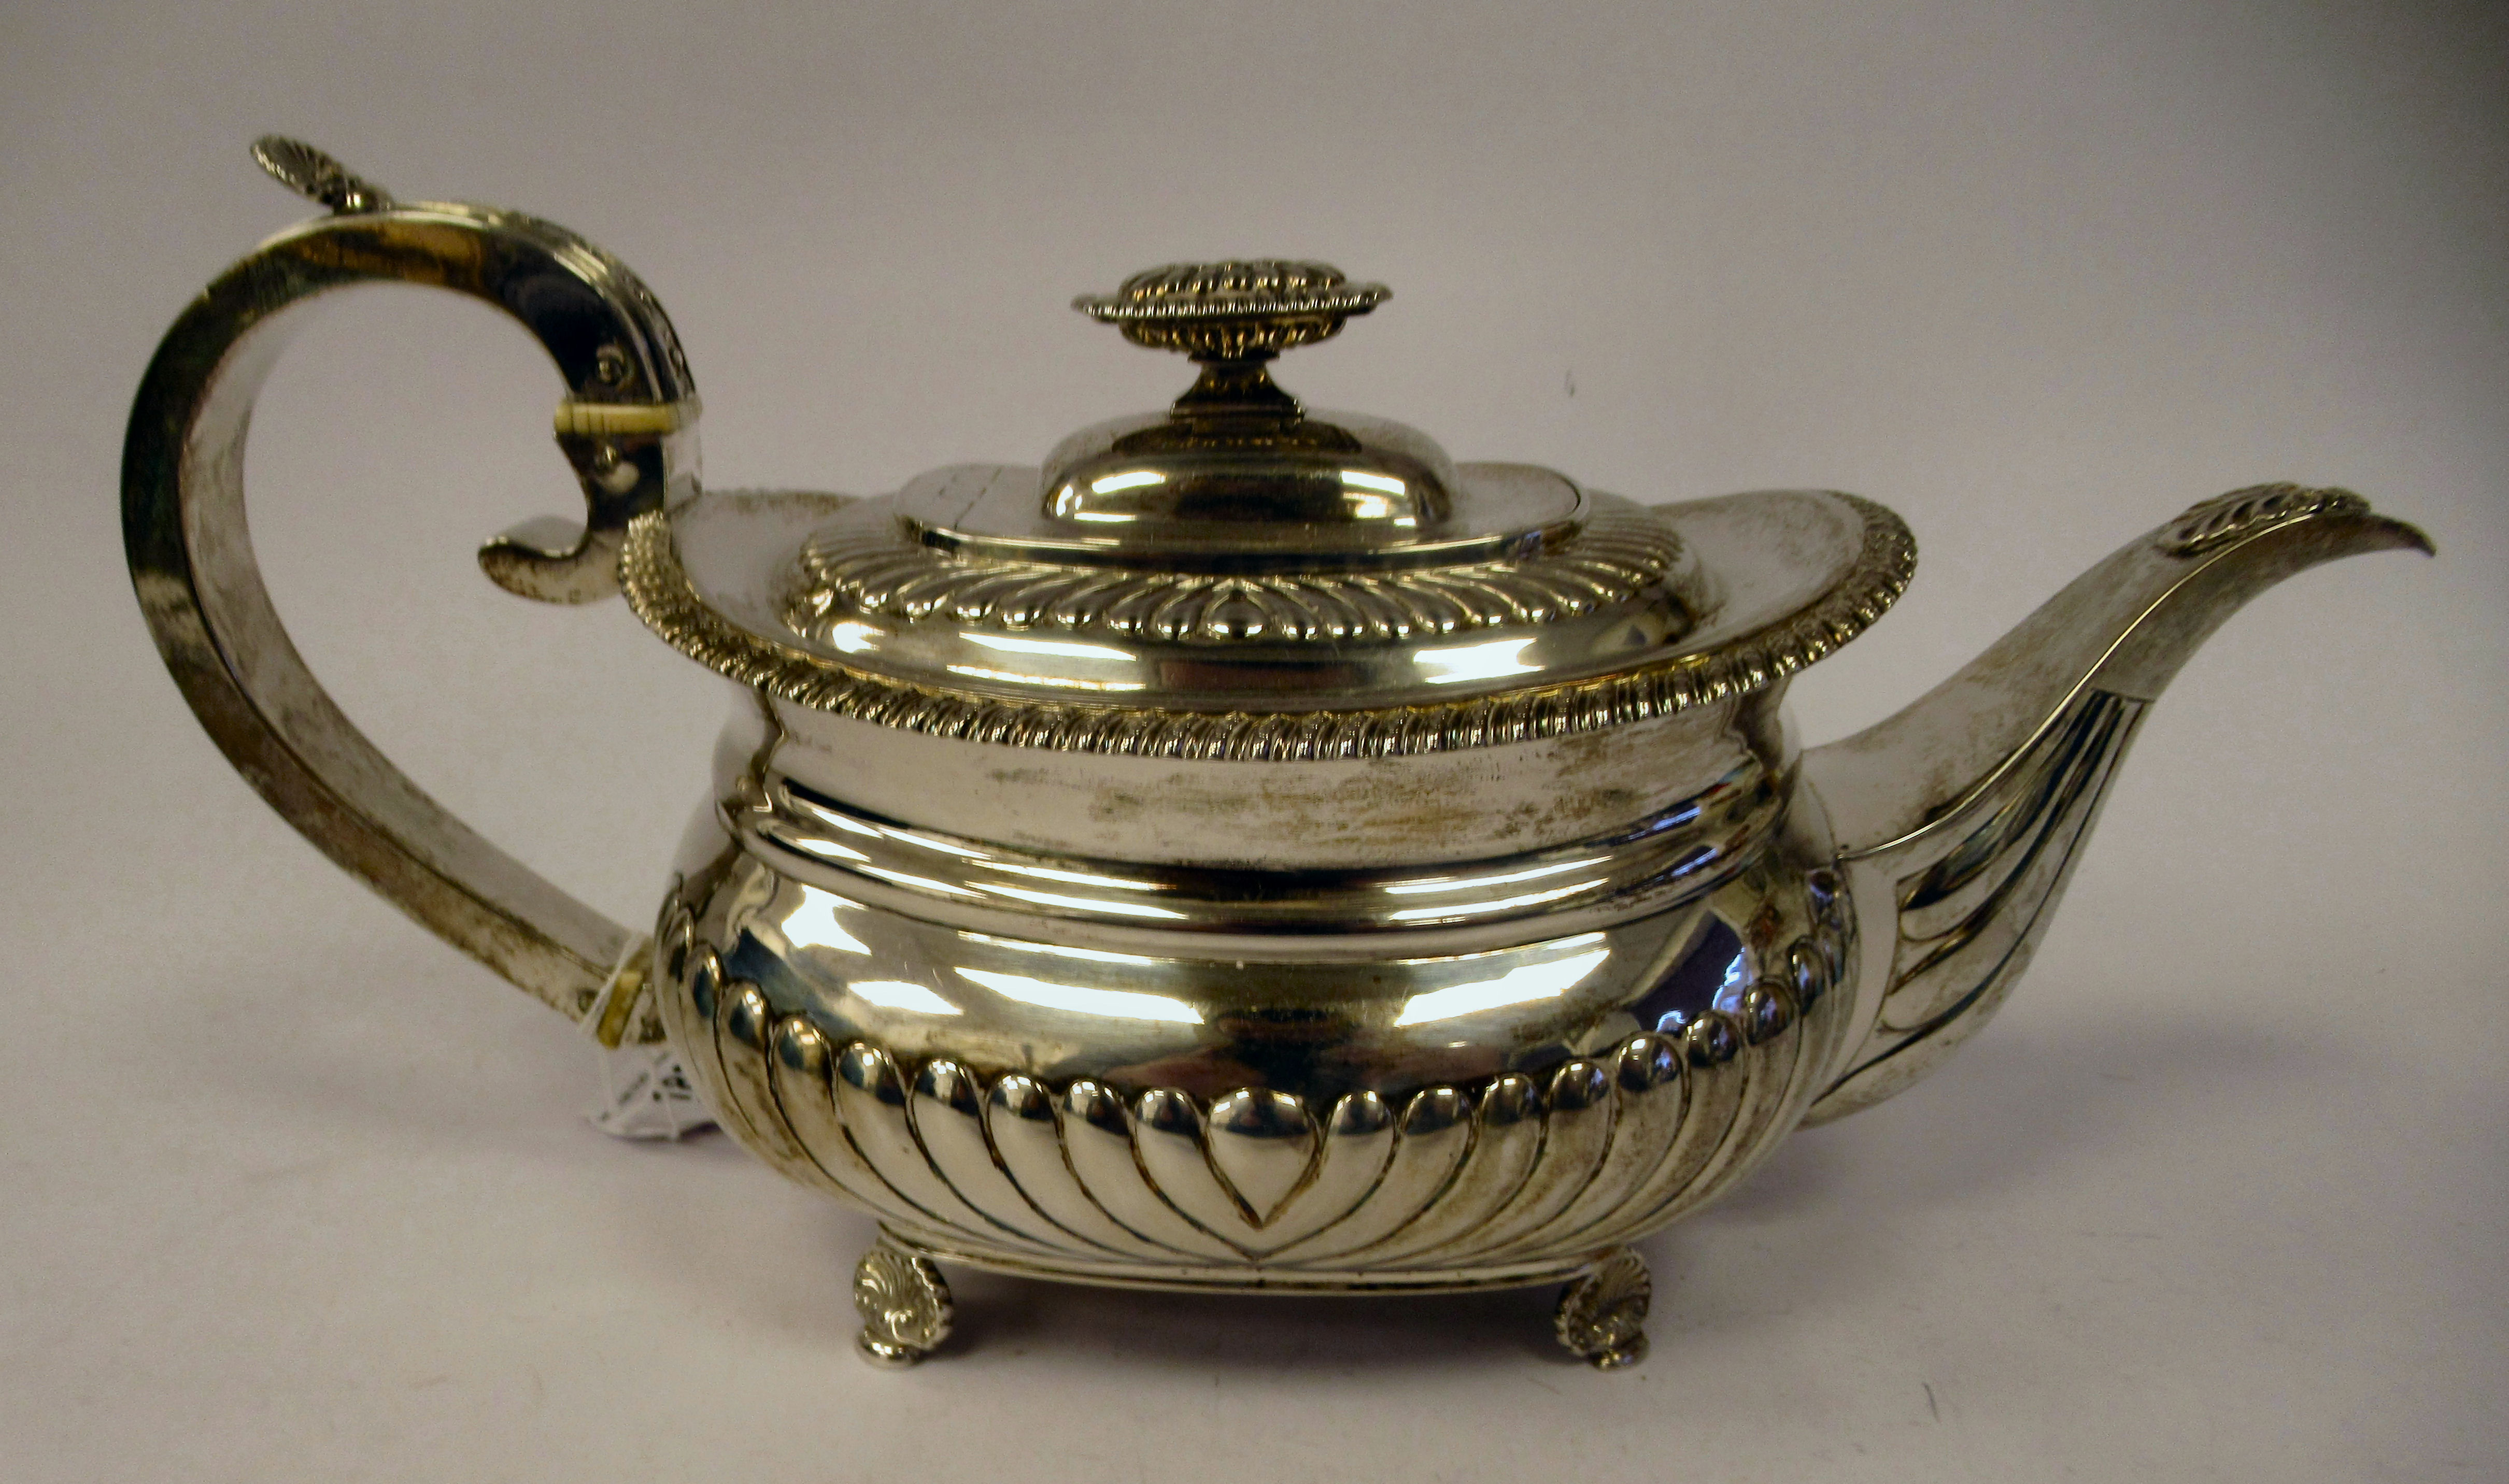 A George III silver teapot of squat, bulbous circular form with floral and foliate cast ornament, - Image 3 of 7